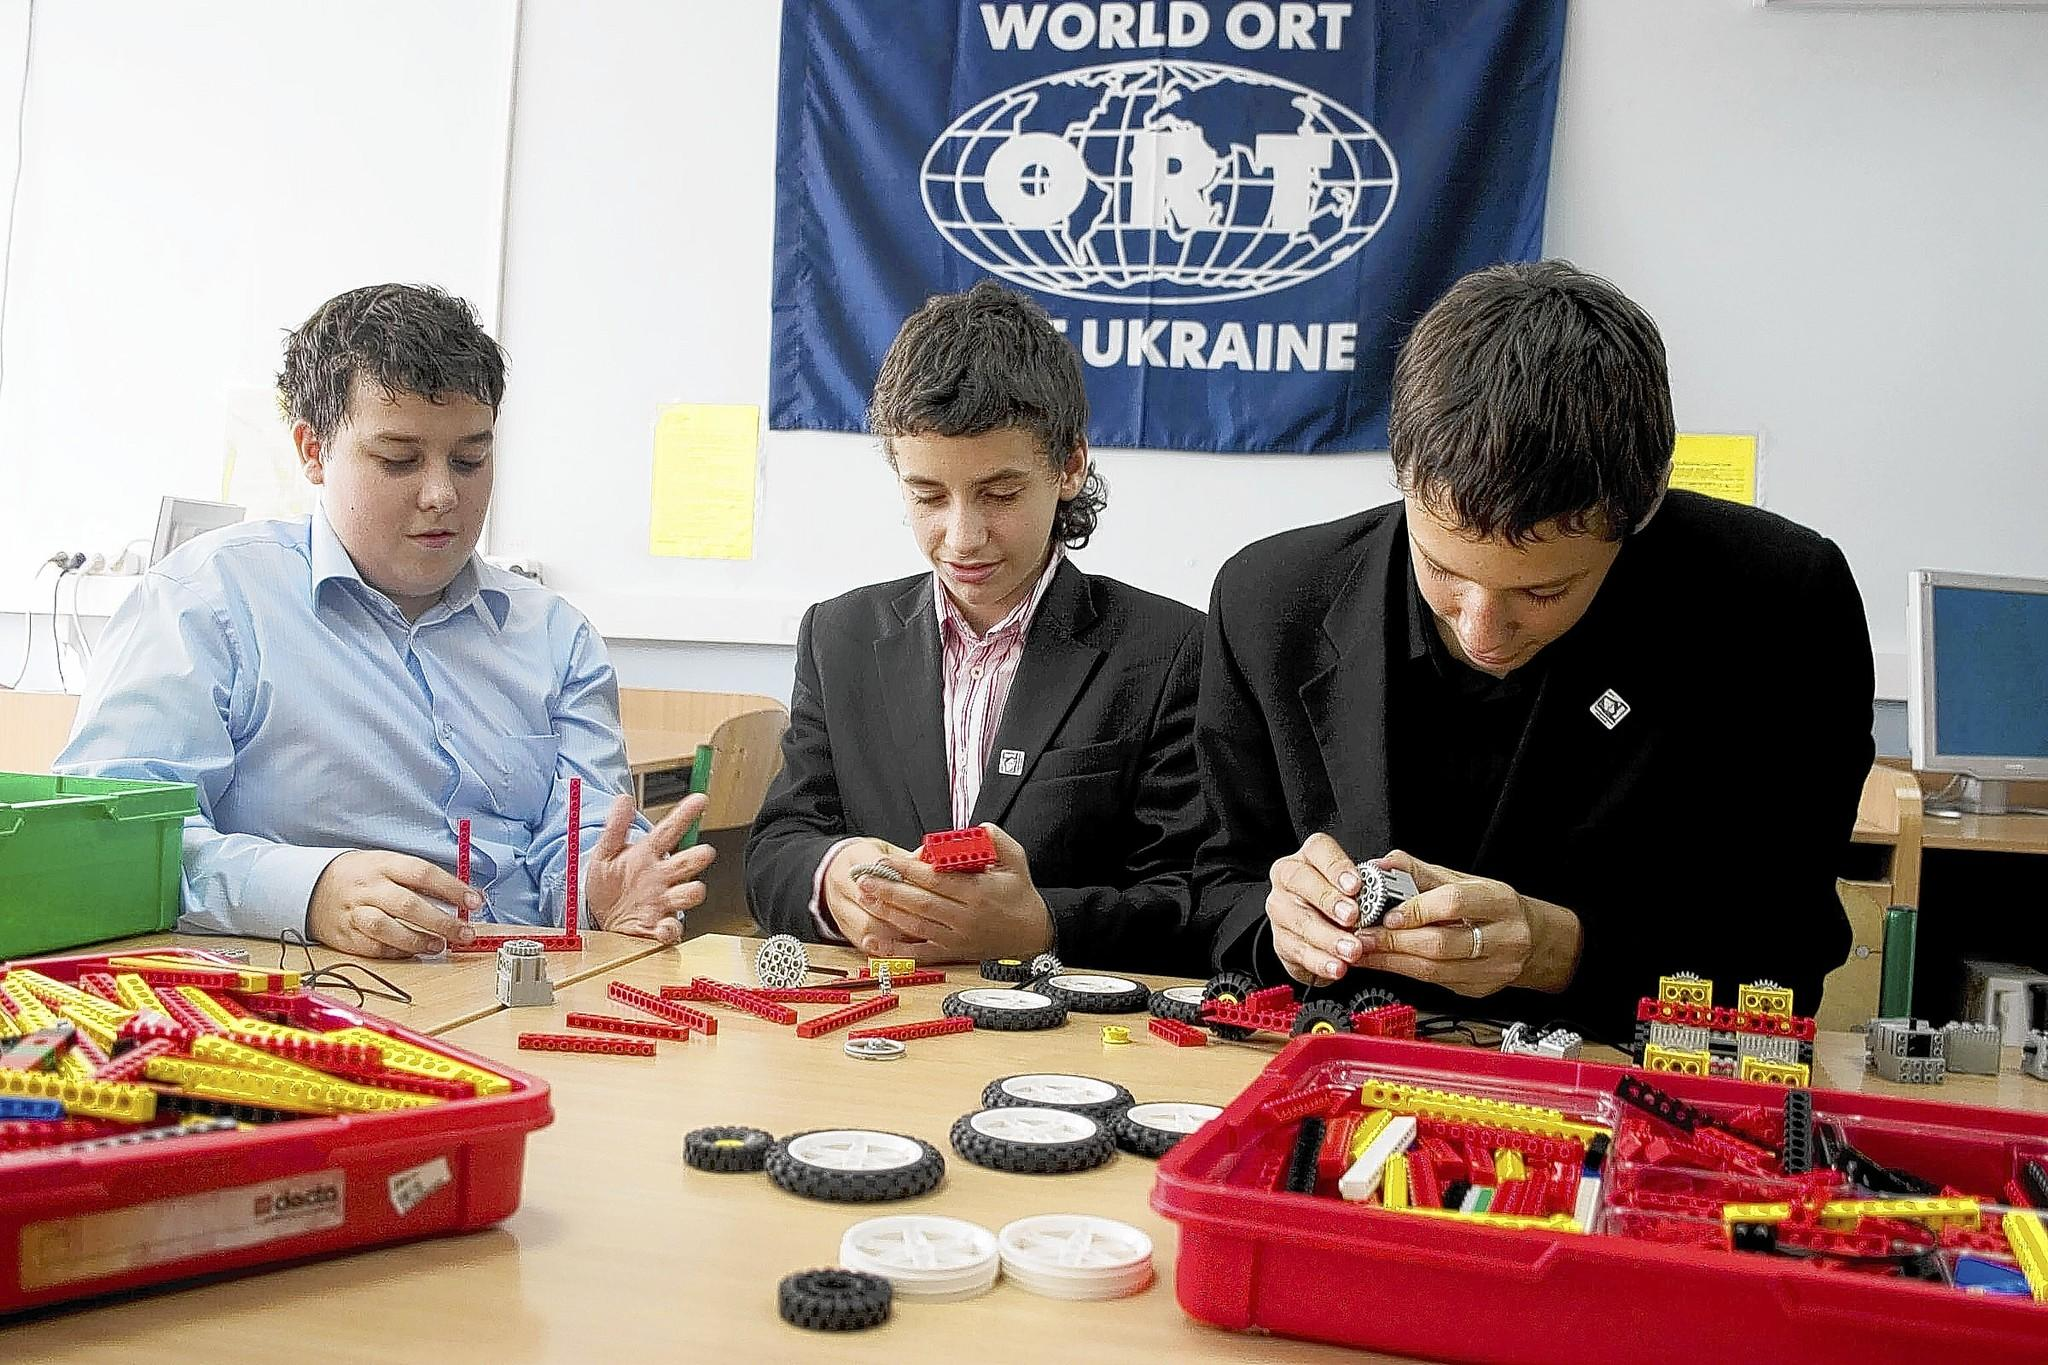 Education moves forward in one of the classrooms in World ORT's Ukraine schools despite the country's current crisis.